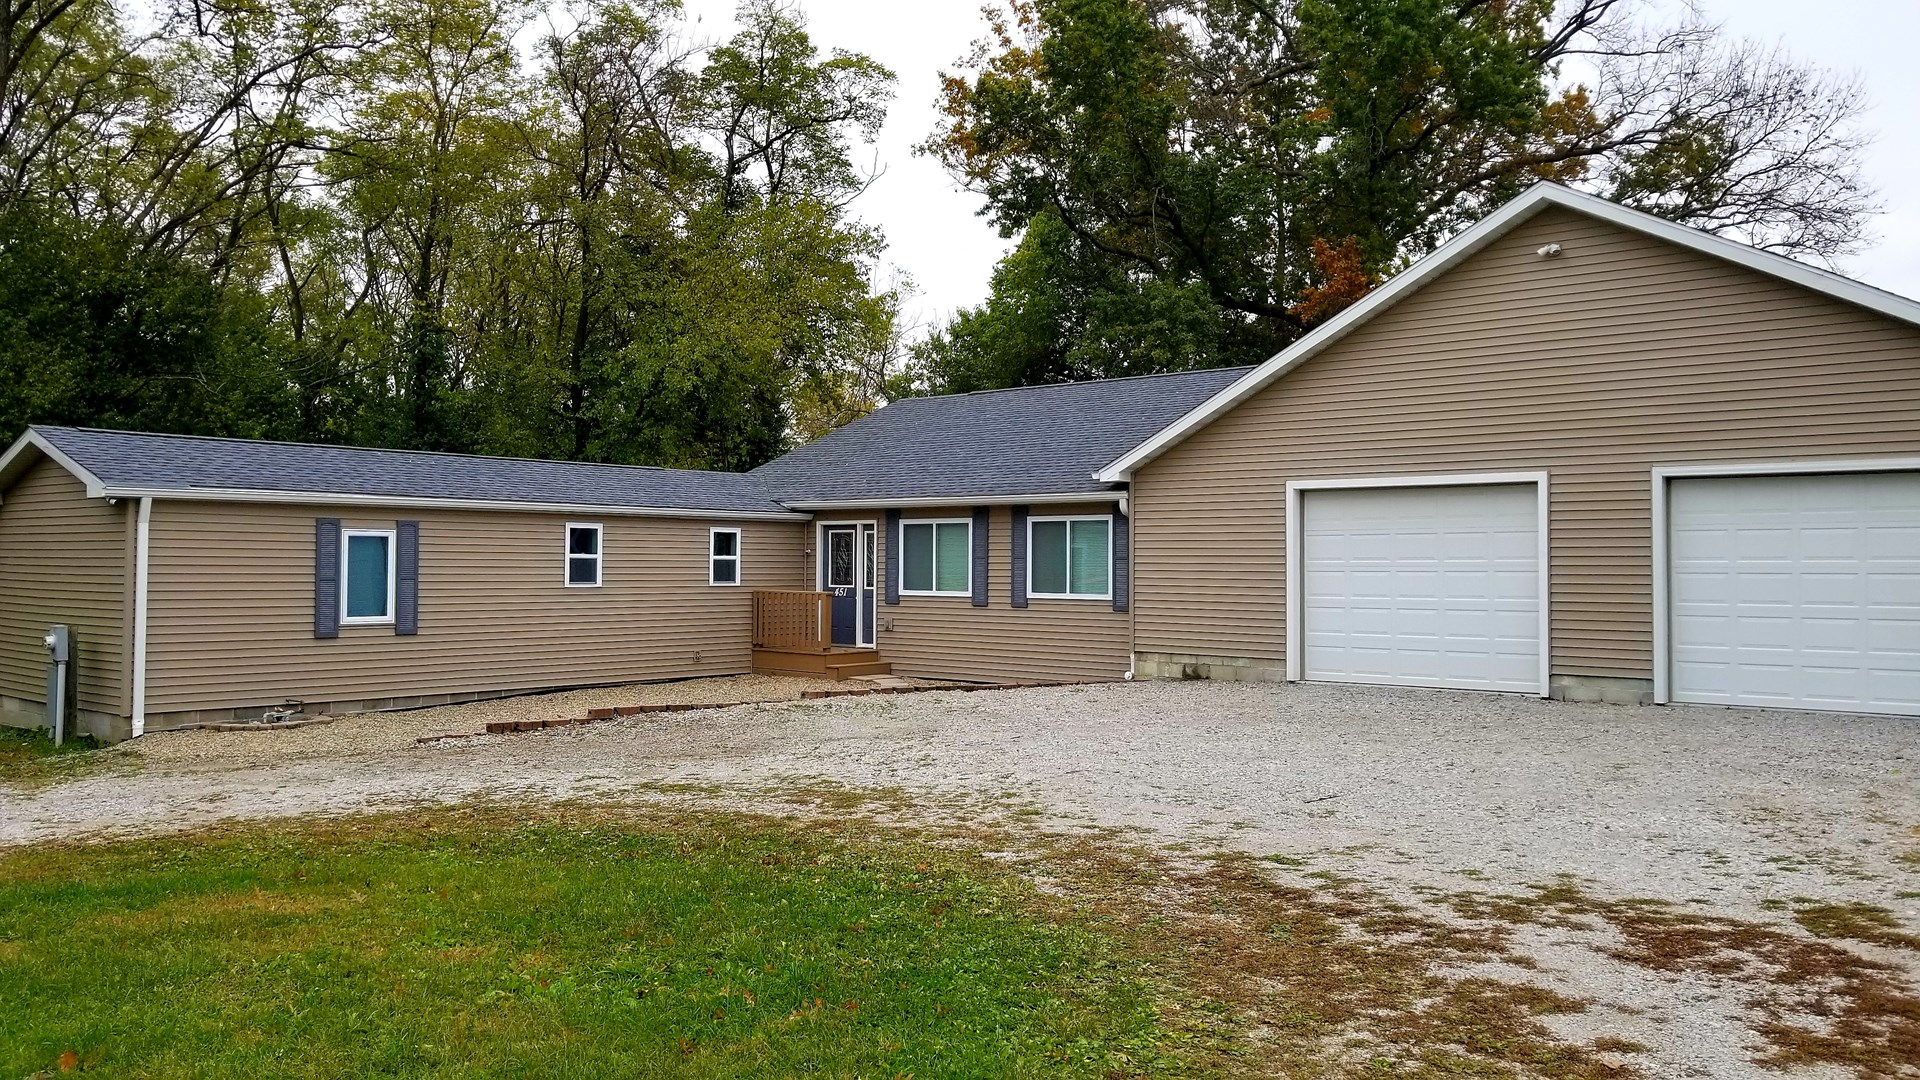 Carlinville Updated Ranch w/3 Bedrooms on Dead-End Street